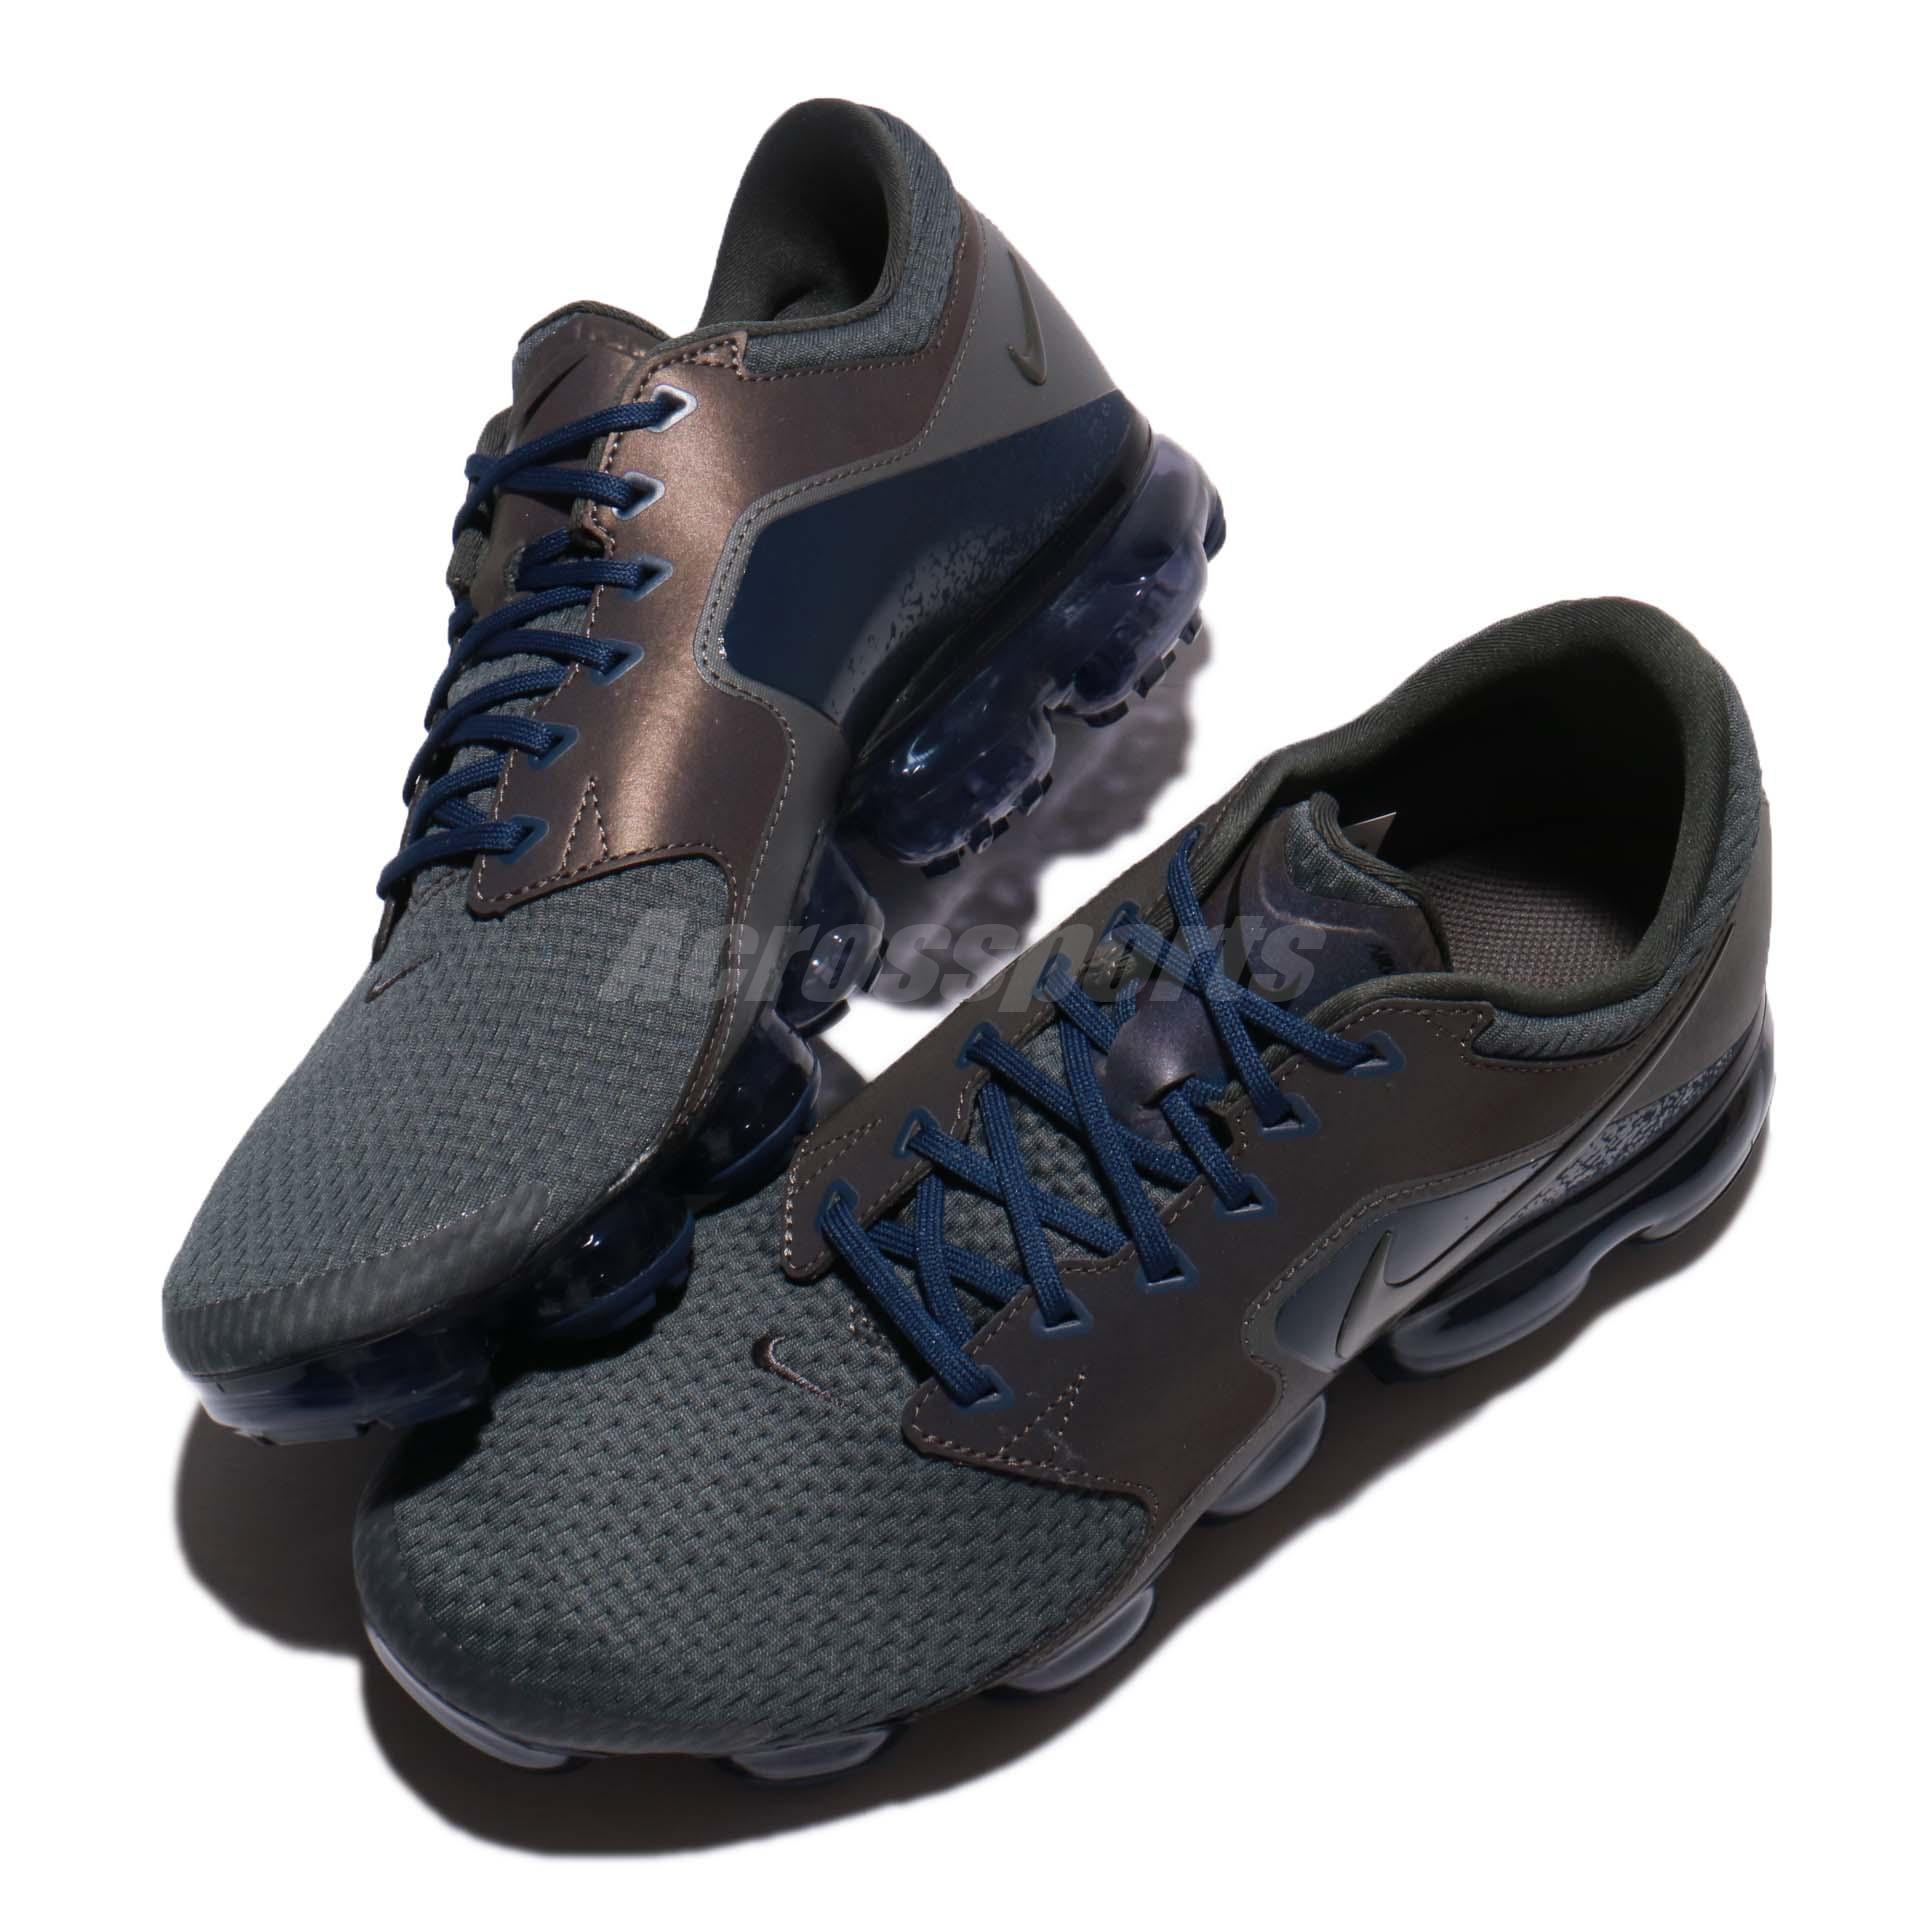 523eac9ec974 ... coupon code for nike air vapormax r midnight fog blue men running shoes  sneakers 4f81f 84a8f